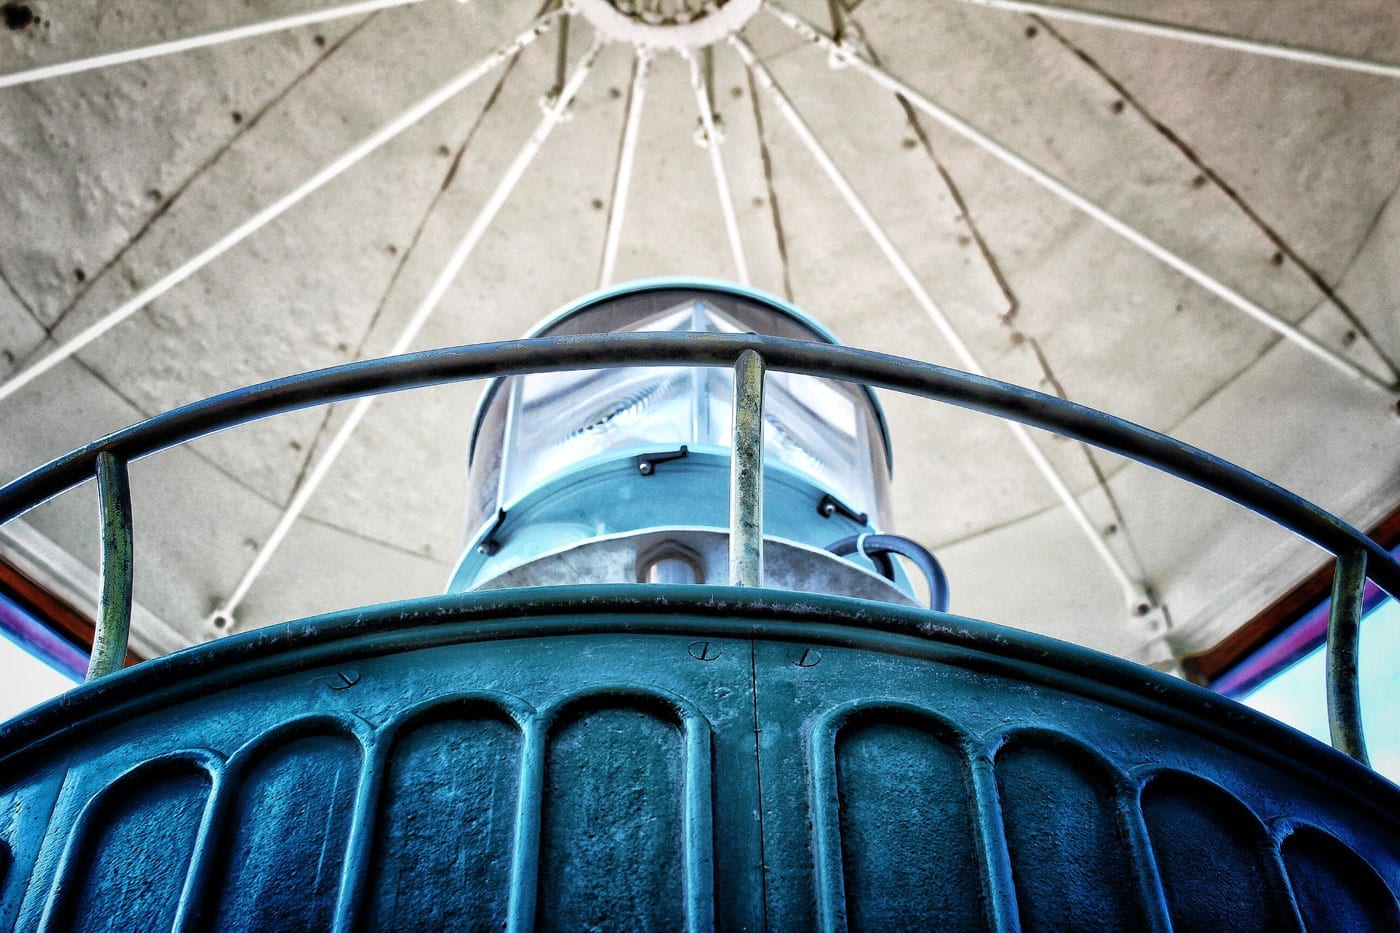 New Jersey Lighthouse Challenge: A New Perspective on the Jersey Shore